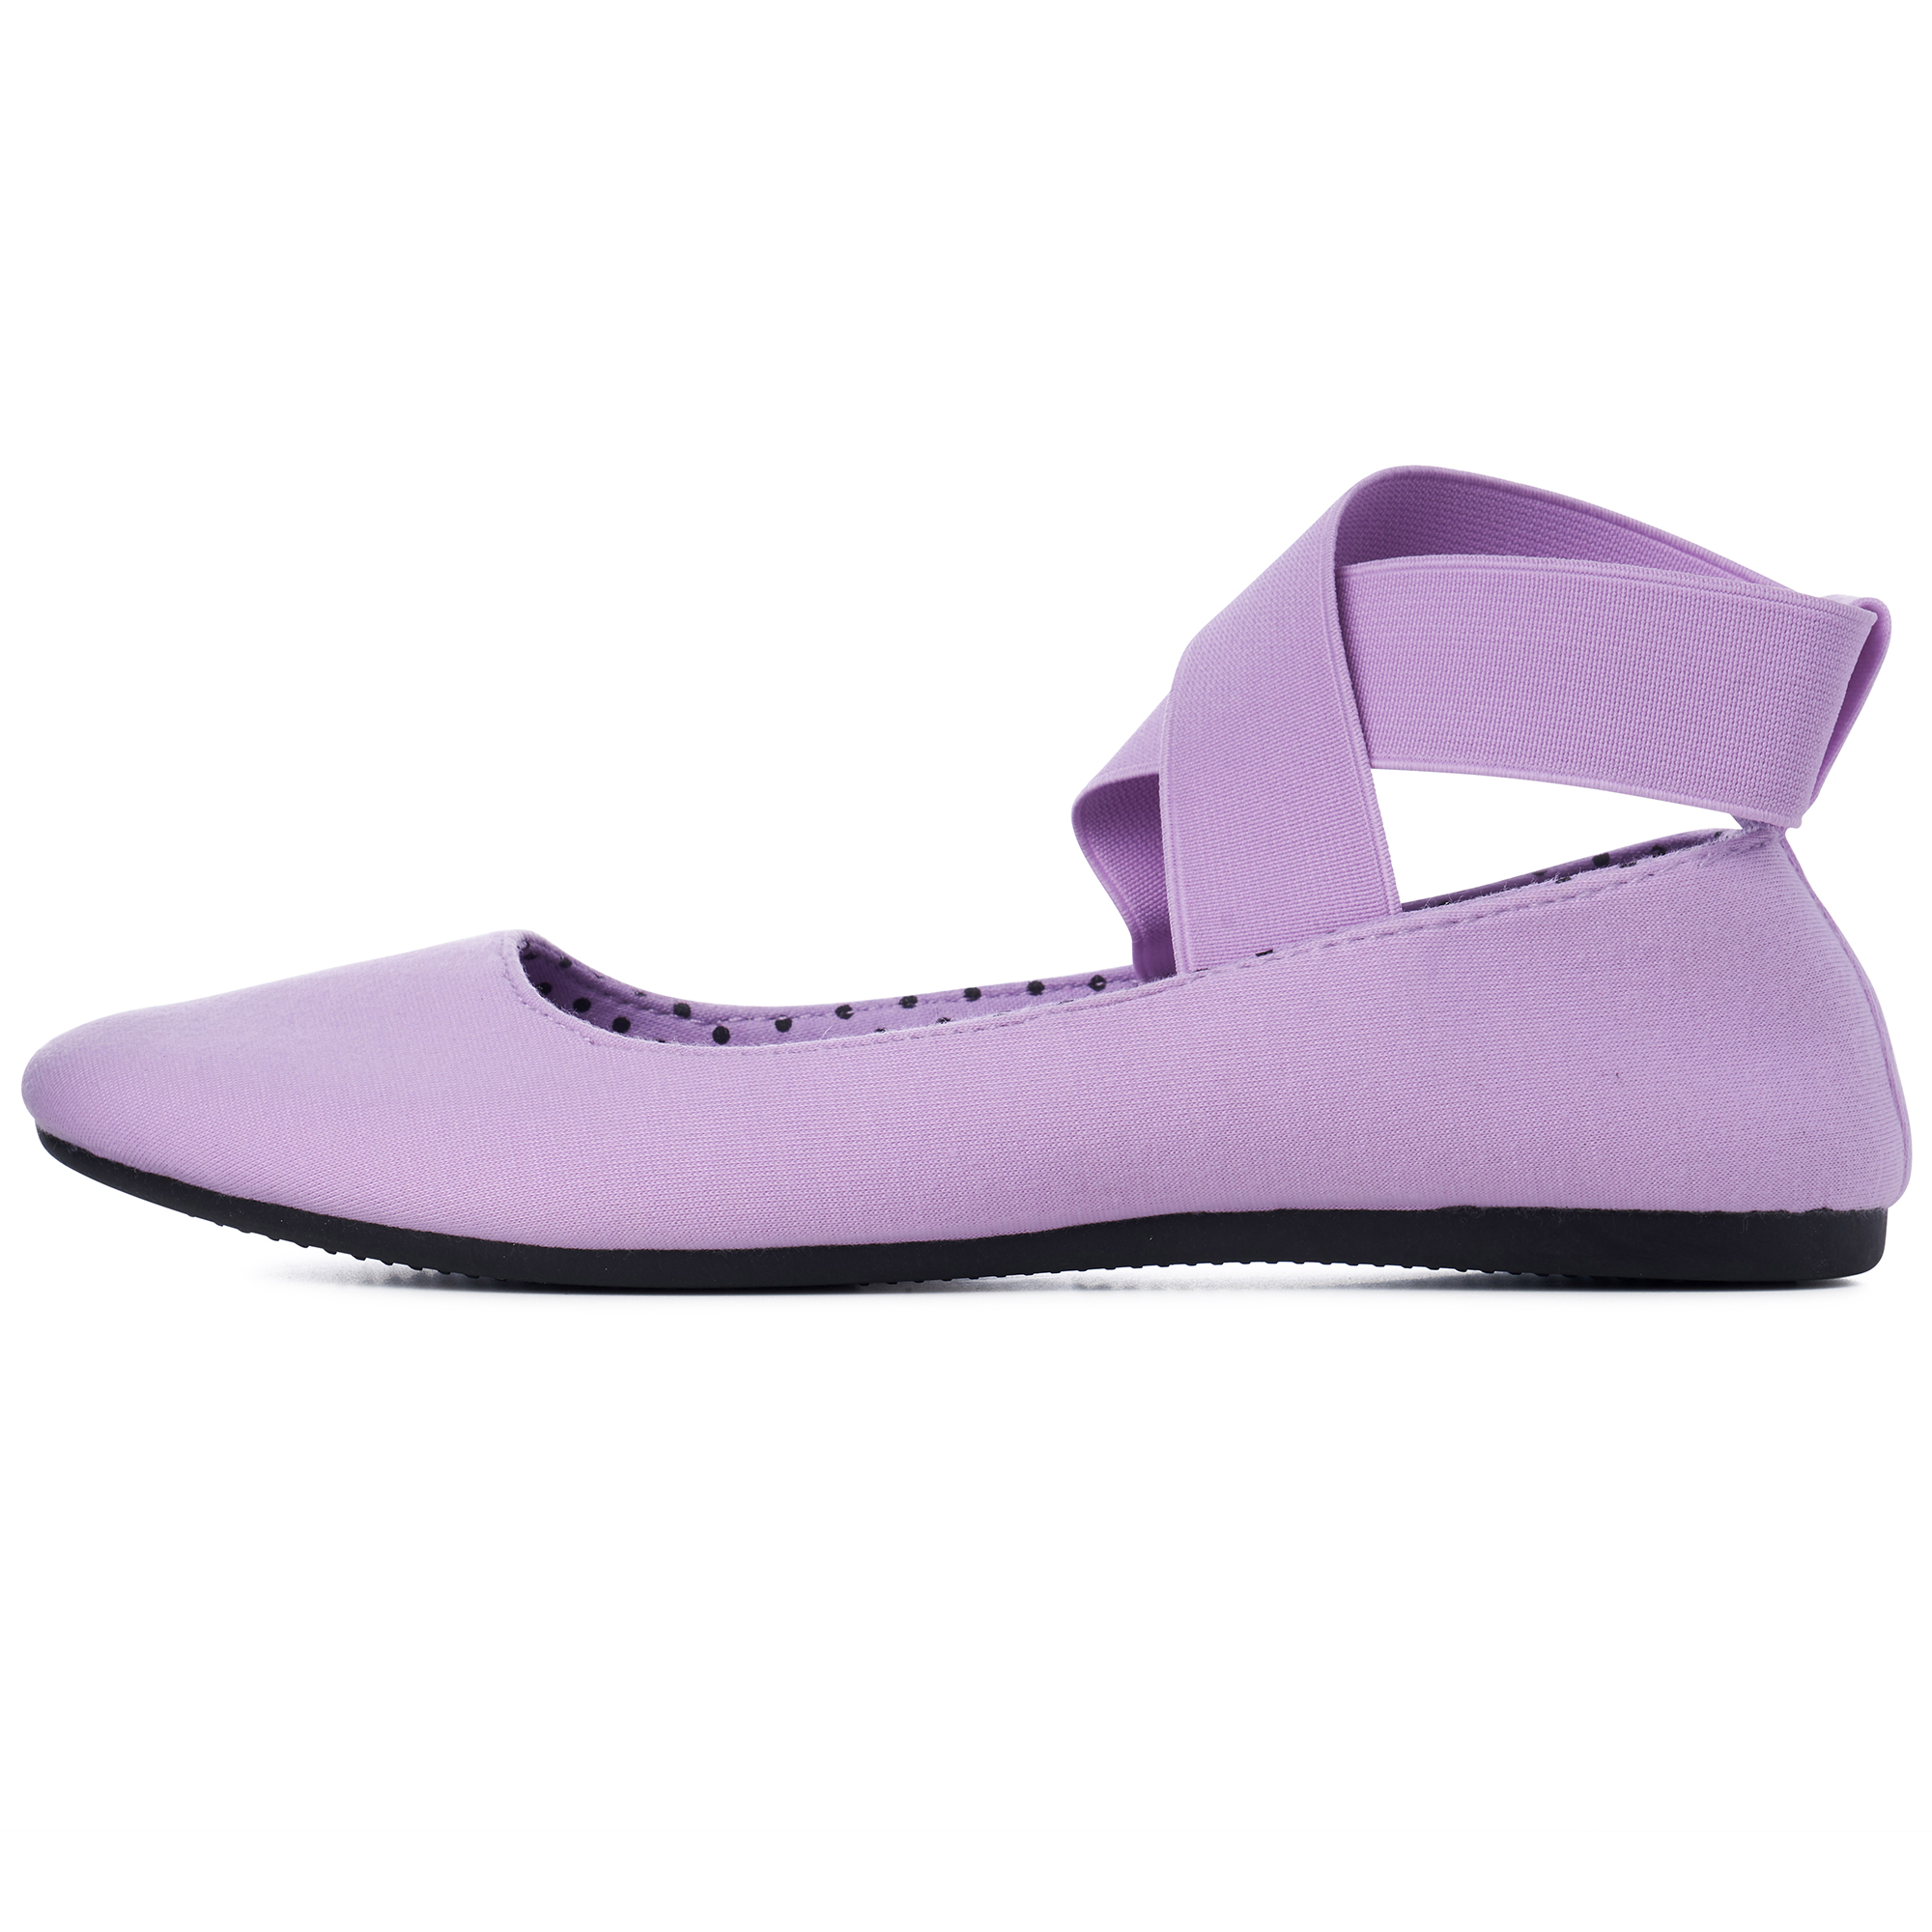 Alpine-Swiss-Peony-Womens-Ballet-Flats-Elastic-Ankle-Strap-Shoes-Slip-On-Loafers thumbnail 55